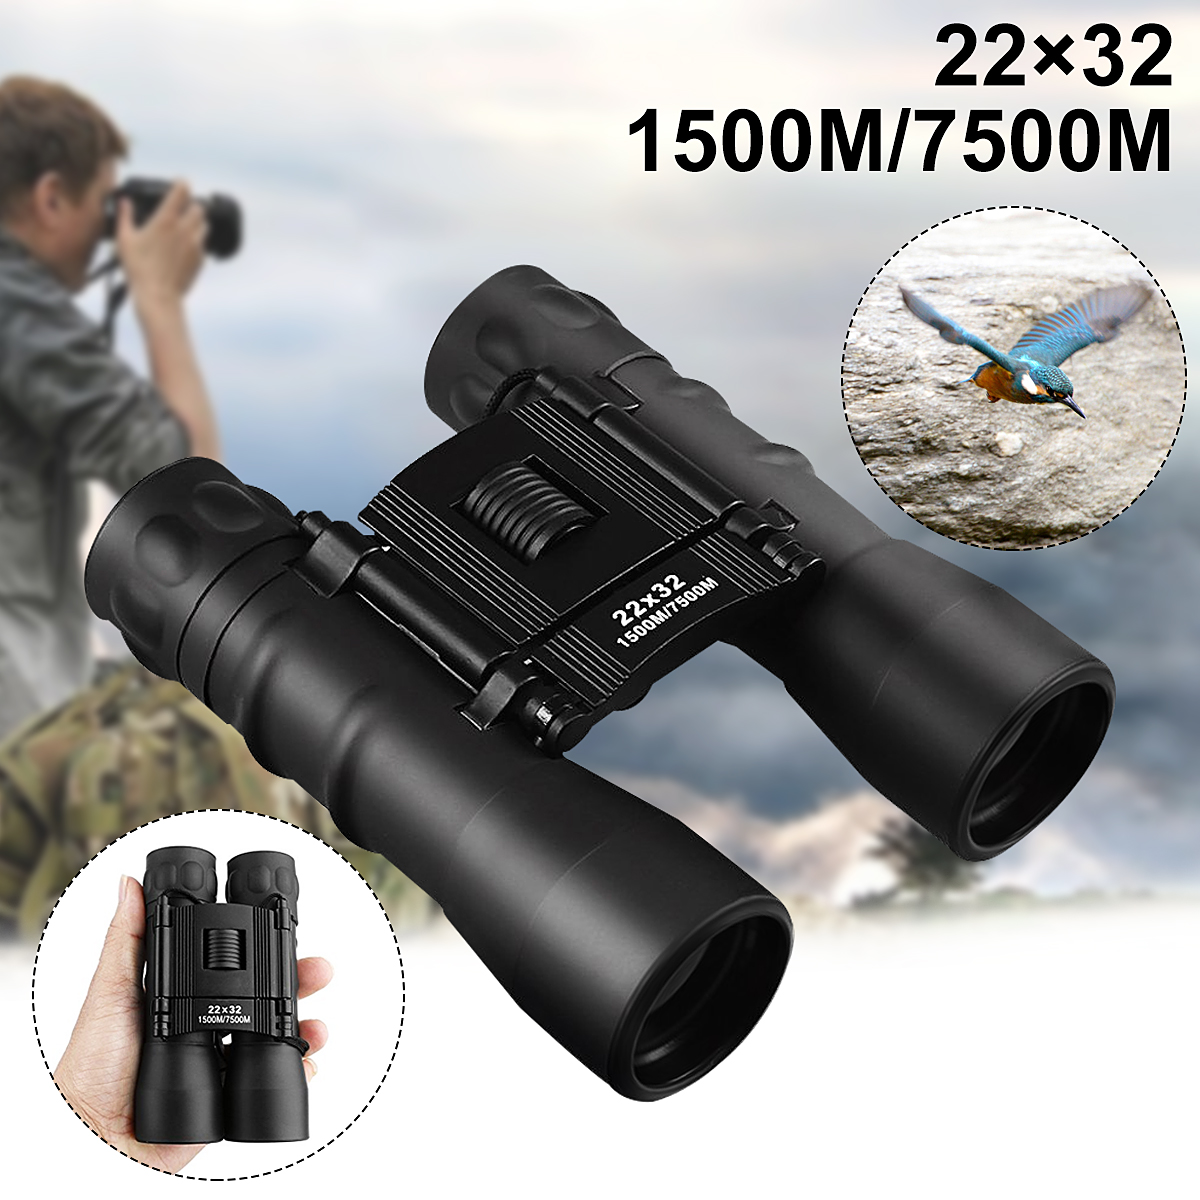 ARCHEER Night Vision Binoculars Telescope Portable 22x32 Magnification 7500M Zoomable Folding Binoculars Archeer Telescope for Outdoor Bird Watching Travelling Sightseeing Hunting